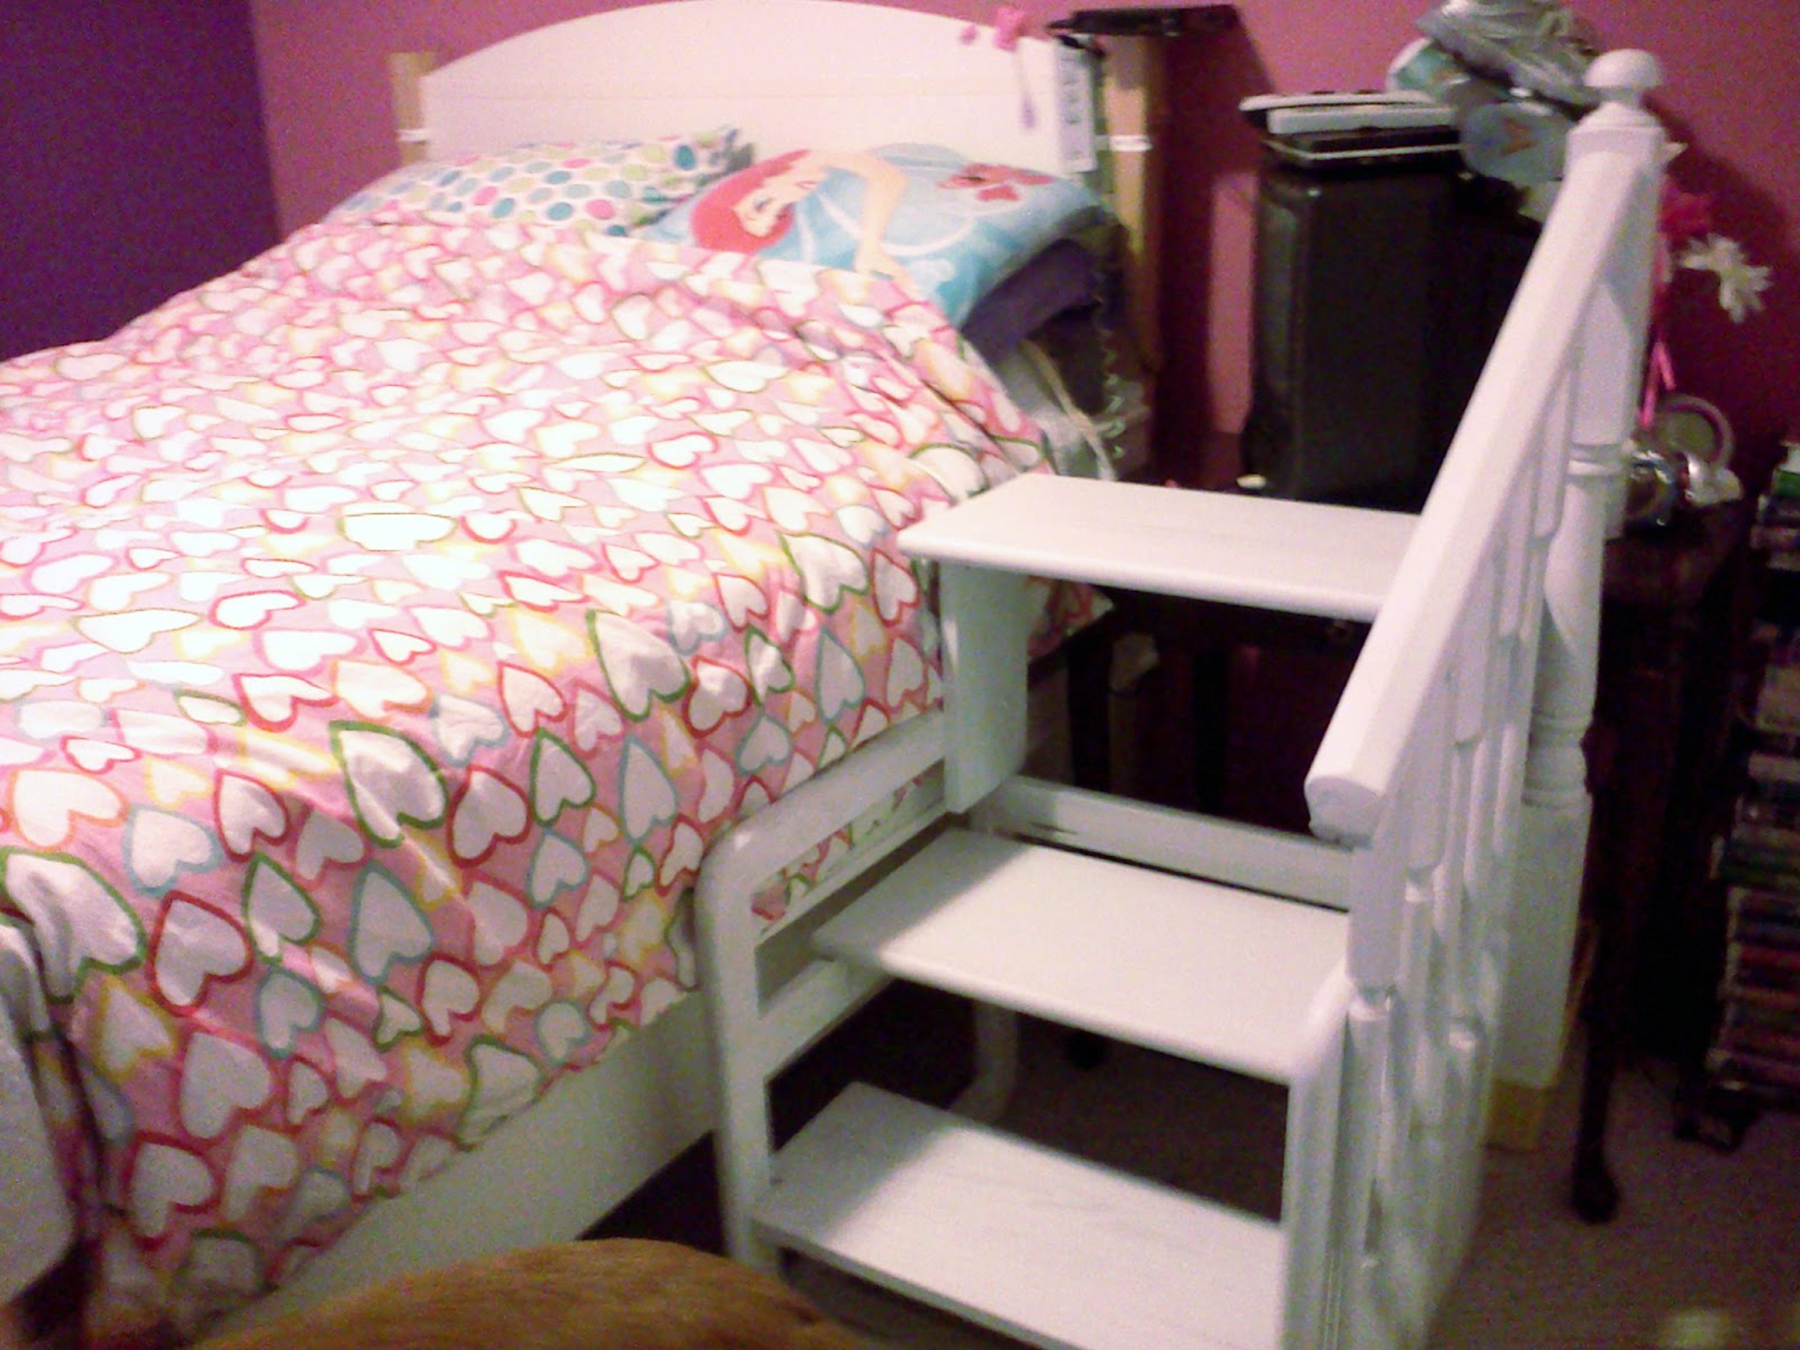 Bed steps beside bed